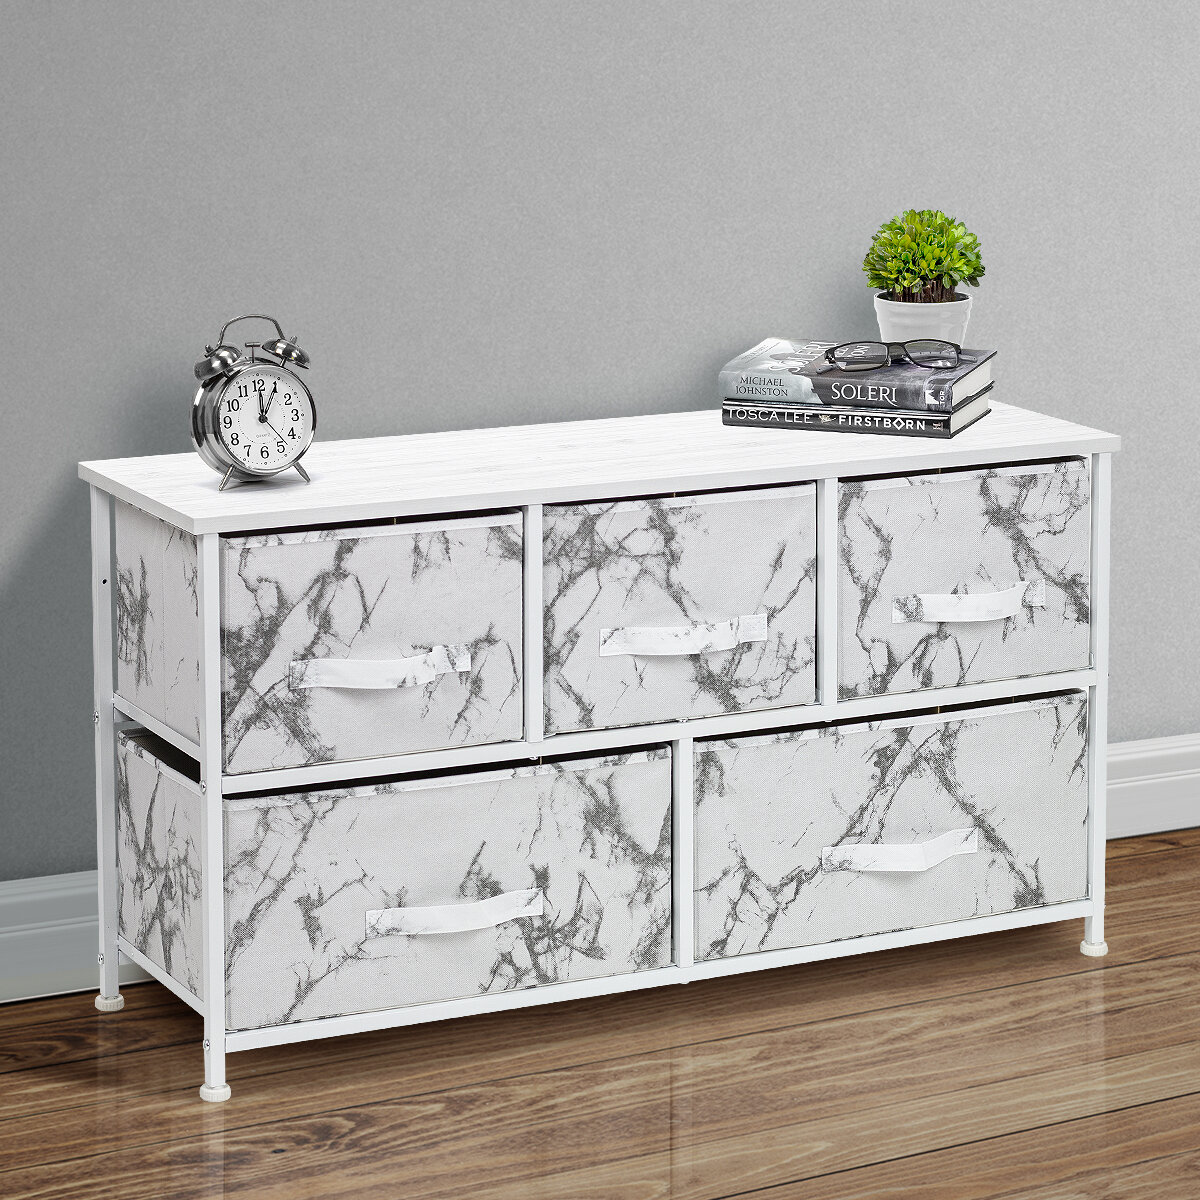 Brayden Studio Latisha 5 Drawer Combo Dresser Reviews Wayfair